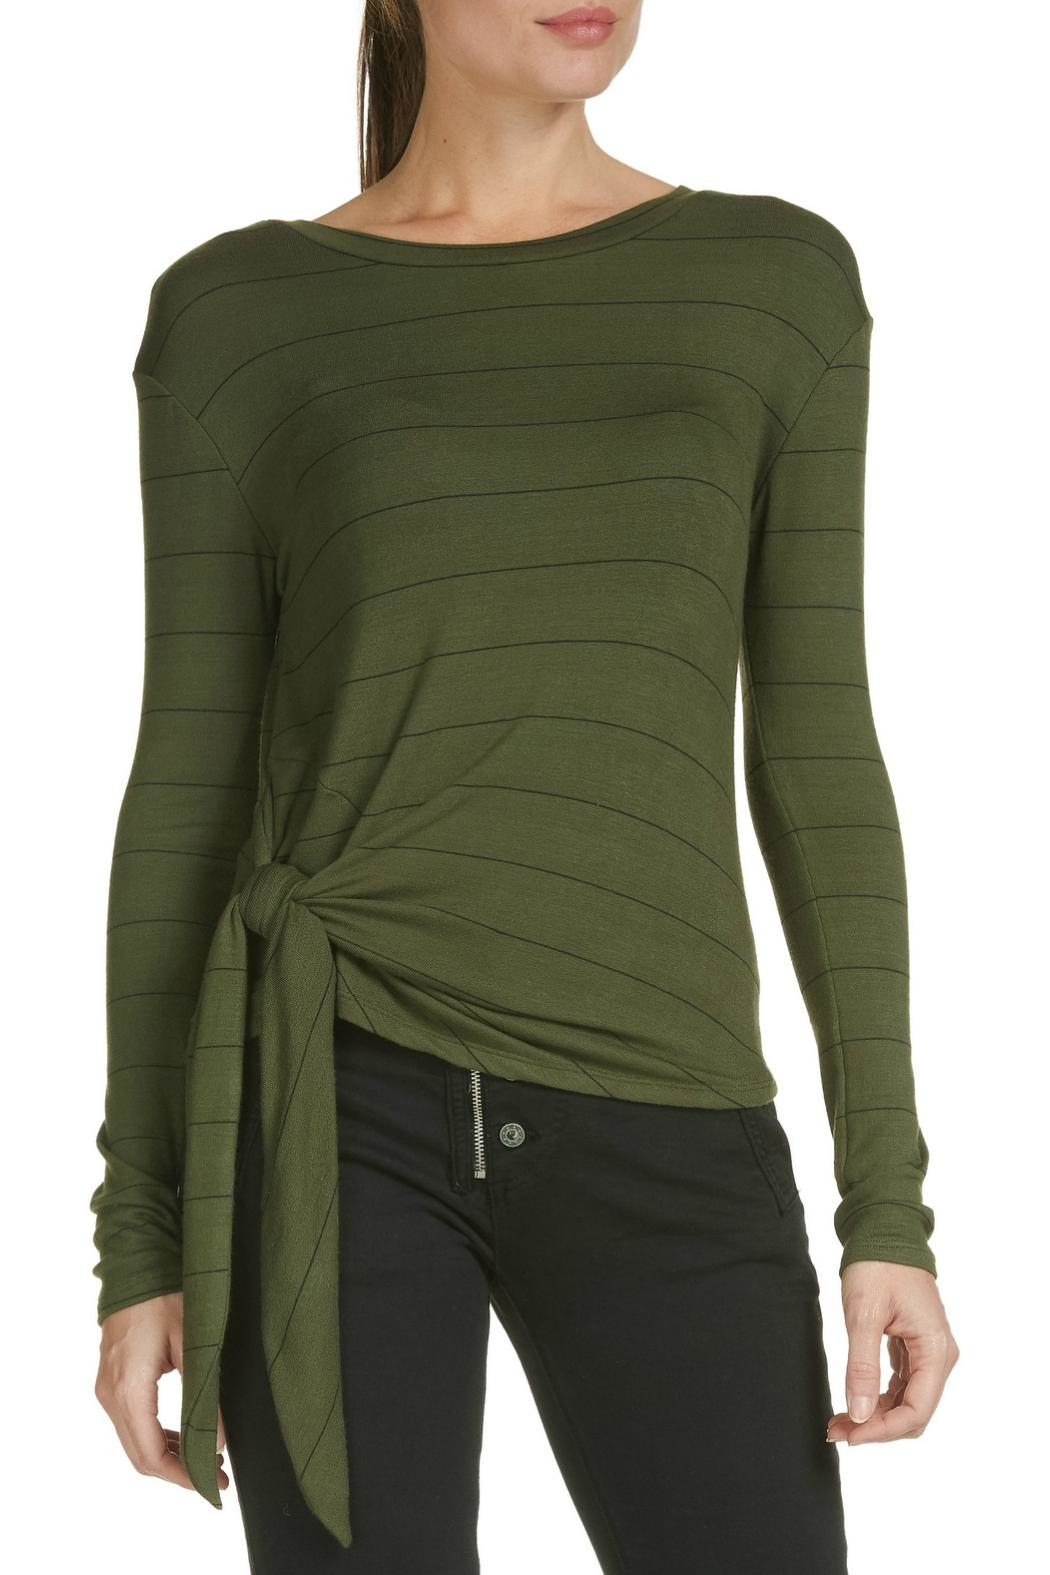 Elan Olive Striped Top - Main Image